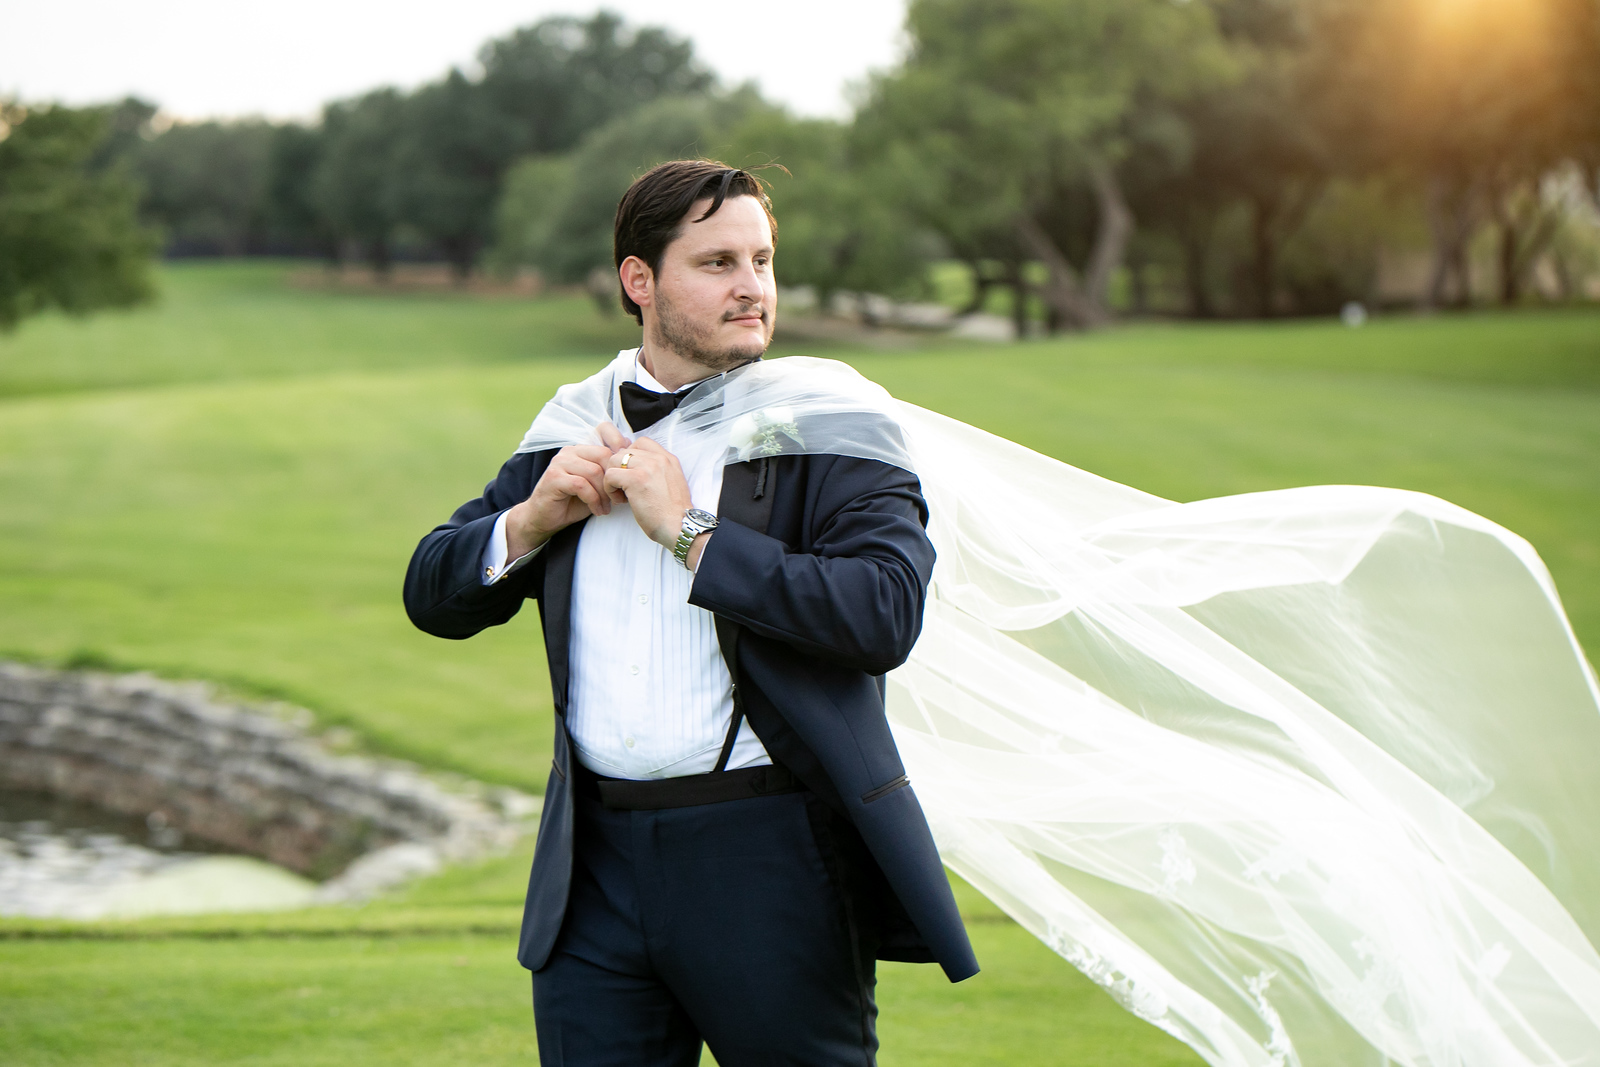 groom jokingly wearing the wedding veil as a cape